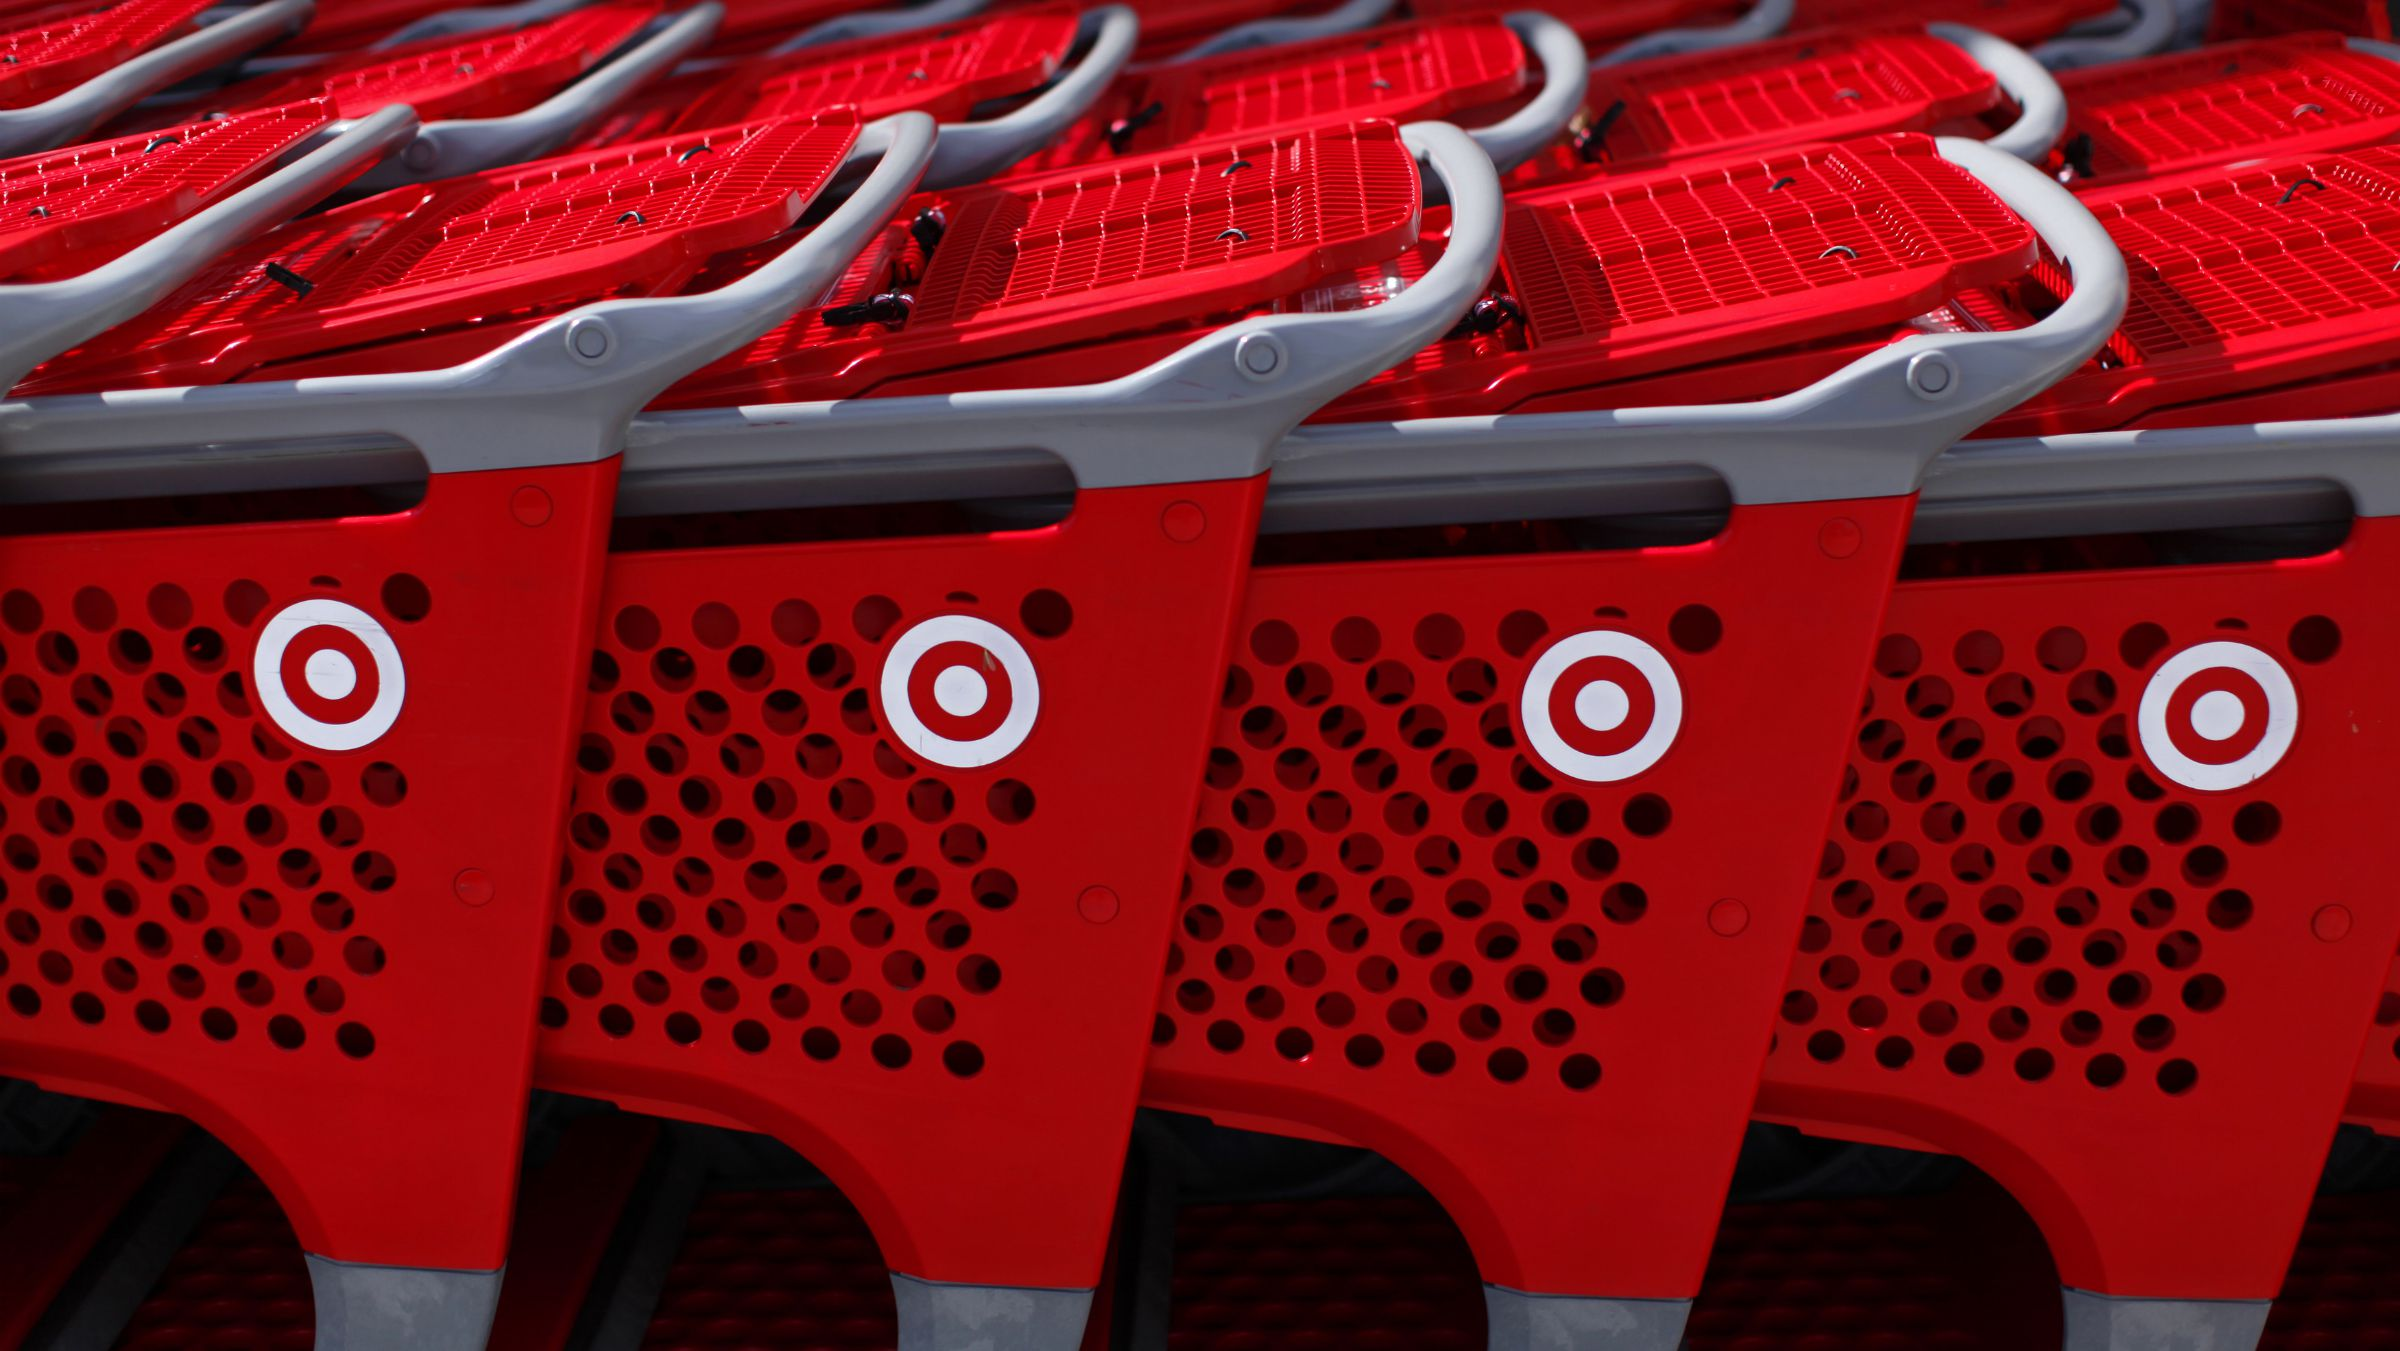 Target shopping carts await customers outside a Target department store in Encinitas, California February 21, 2012. Target will report earnings this week. REUTERS/Mike Blake (UNITED STATES - Tags: BUSINESS)